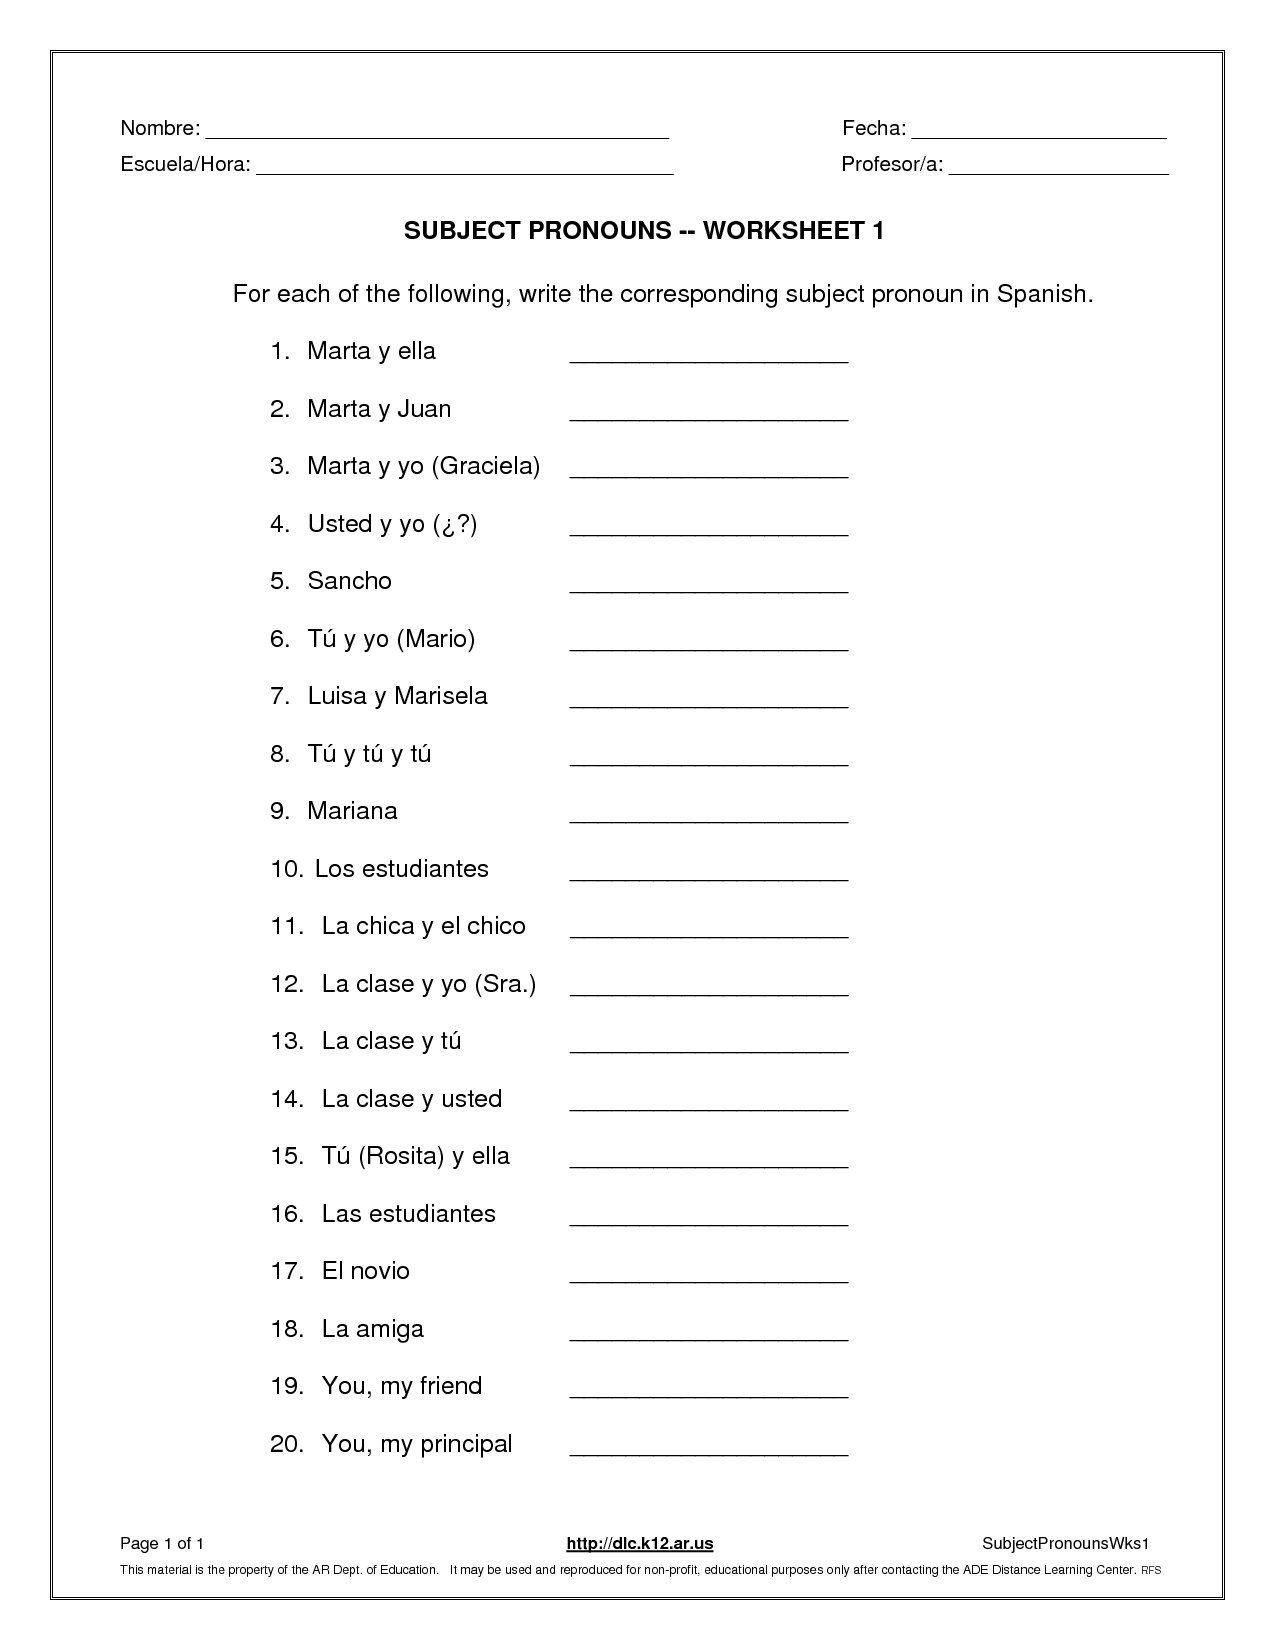 Spanish Subject Pronouns Worksheet Pdf Answer Key : spanish, subject, pronouns, worksheet, answer, Subject, Pronouns, Worksheet, Spanish, Answer, Worksheets,, Pronouns,, Pronoun, Worksheets